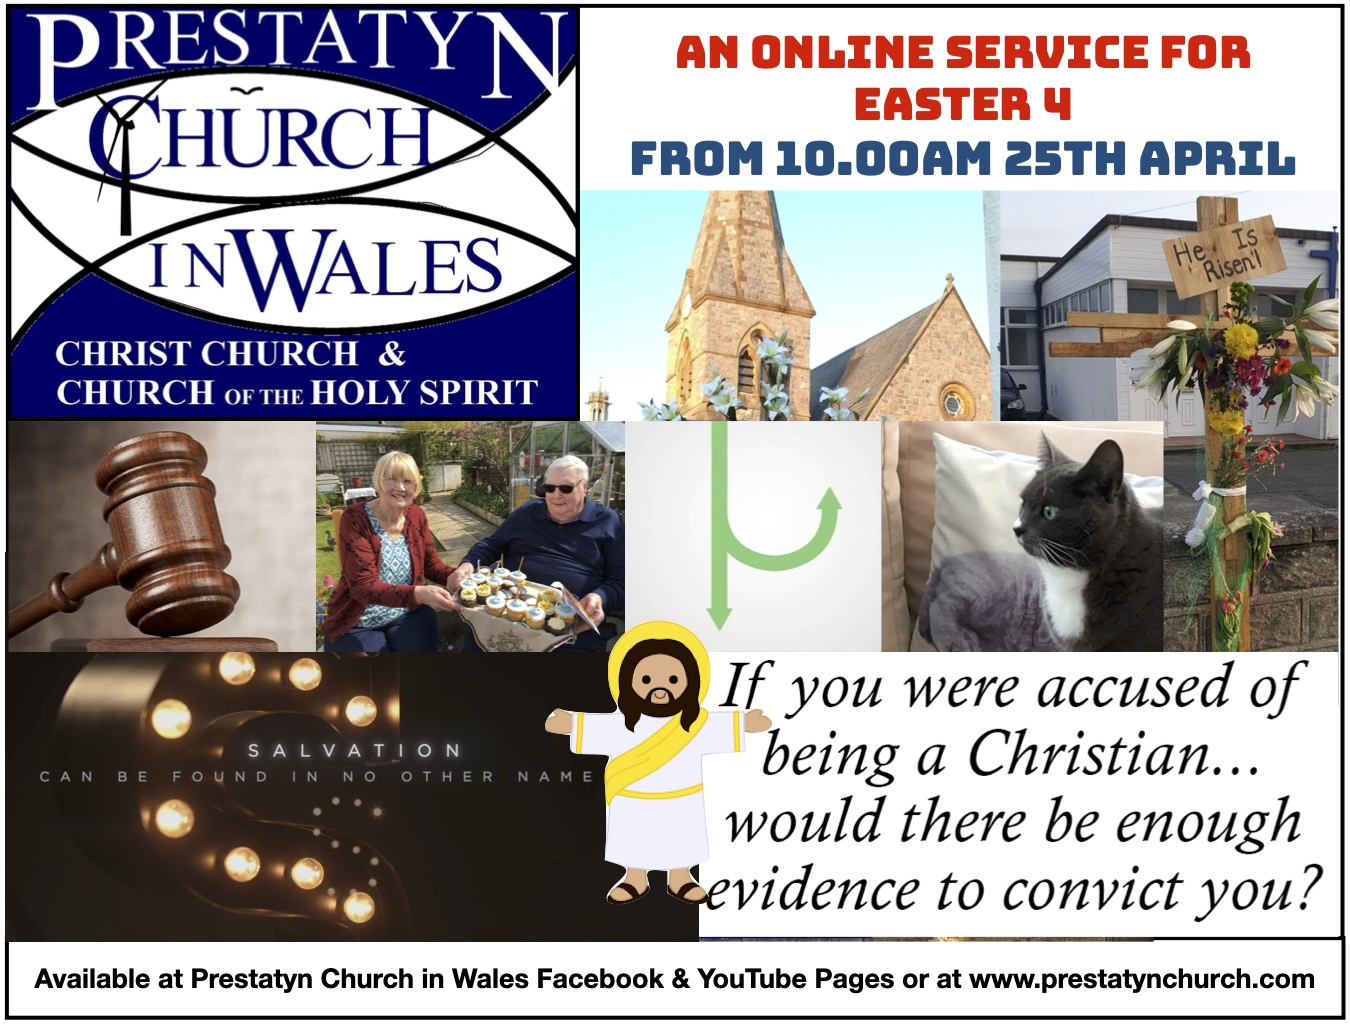 """Image containing several images and text. Text reads: """" Prestatyn Church In Wales. Christ Church & Church of the Holy Spirit."""" """"An Online Service For Easter 4. Available from 10:00 AM25th April."""" """"If you were accused of being a Christian... Would there be enough evidence to convict you?"""" """"Available at Prestatyn Church In Wales facebook and Youtube pages or at www.prestatynchurch.com."""""""